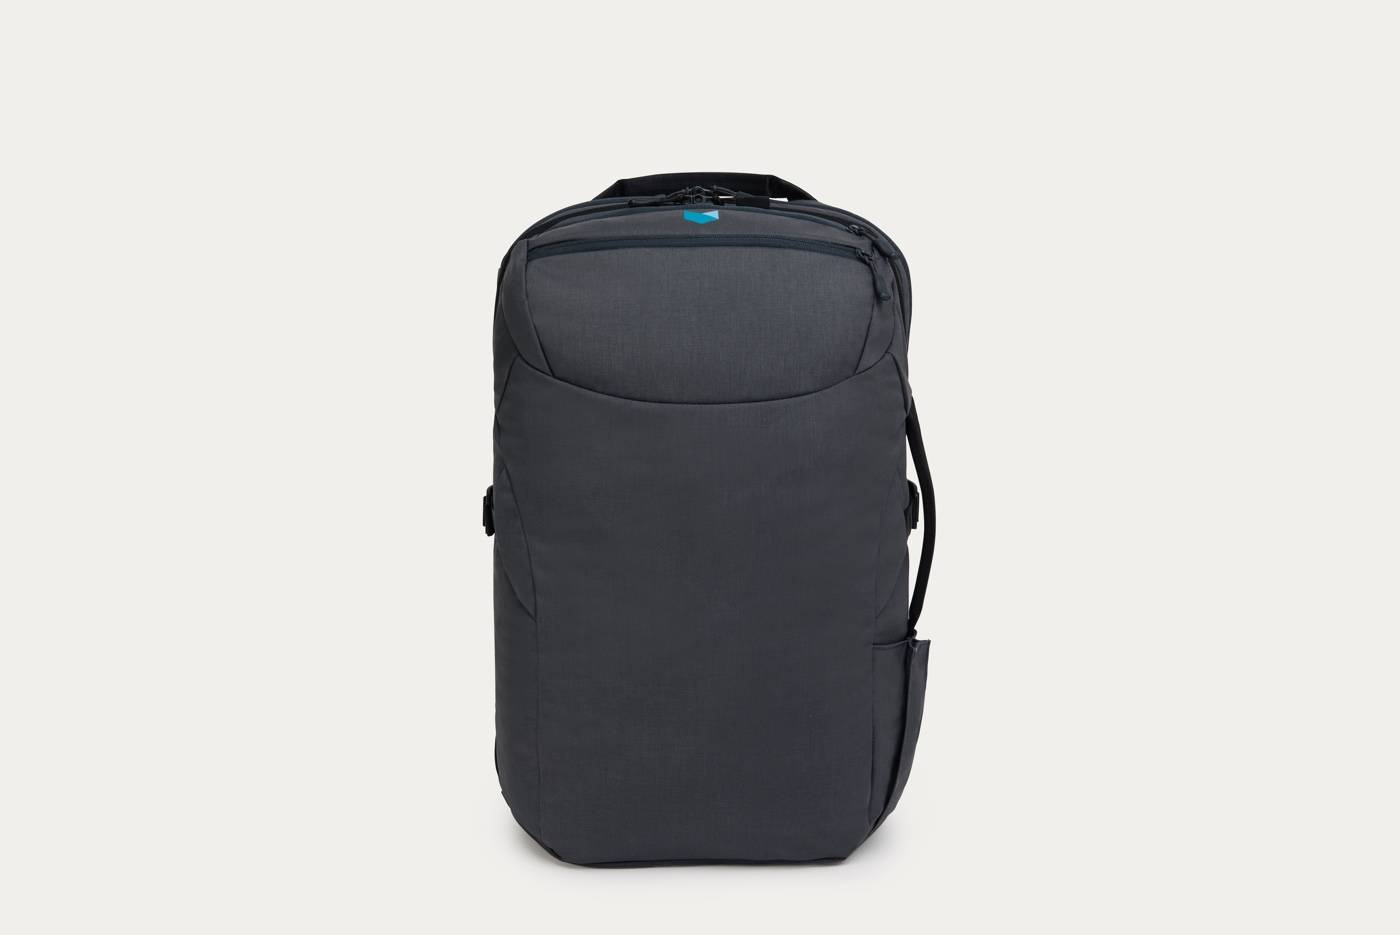 Minaal Carry-on 2.0 - The best travel backpack